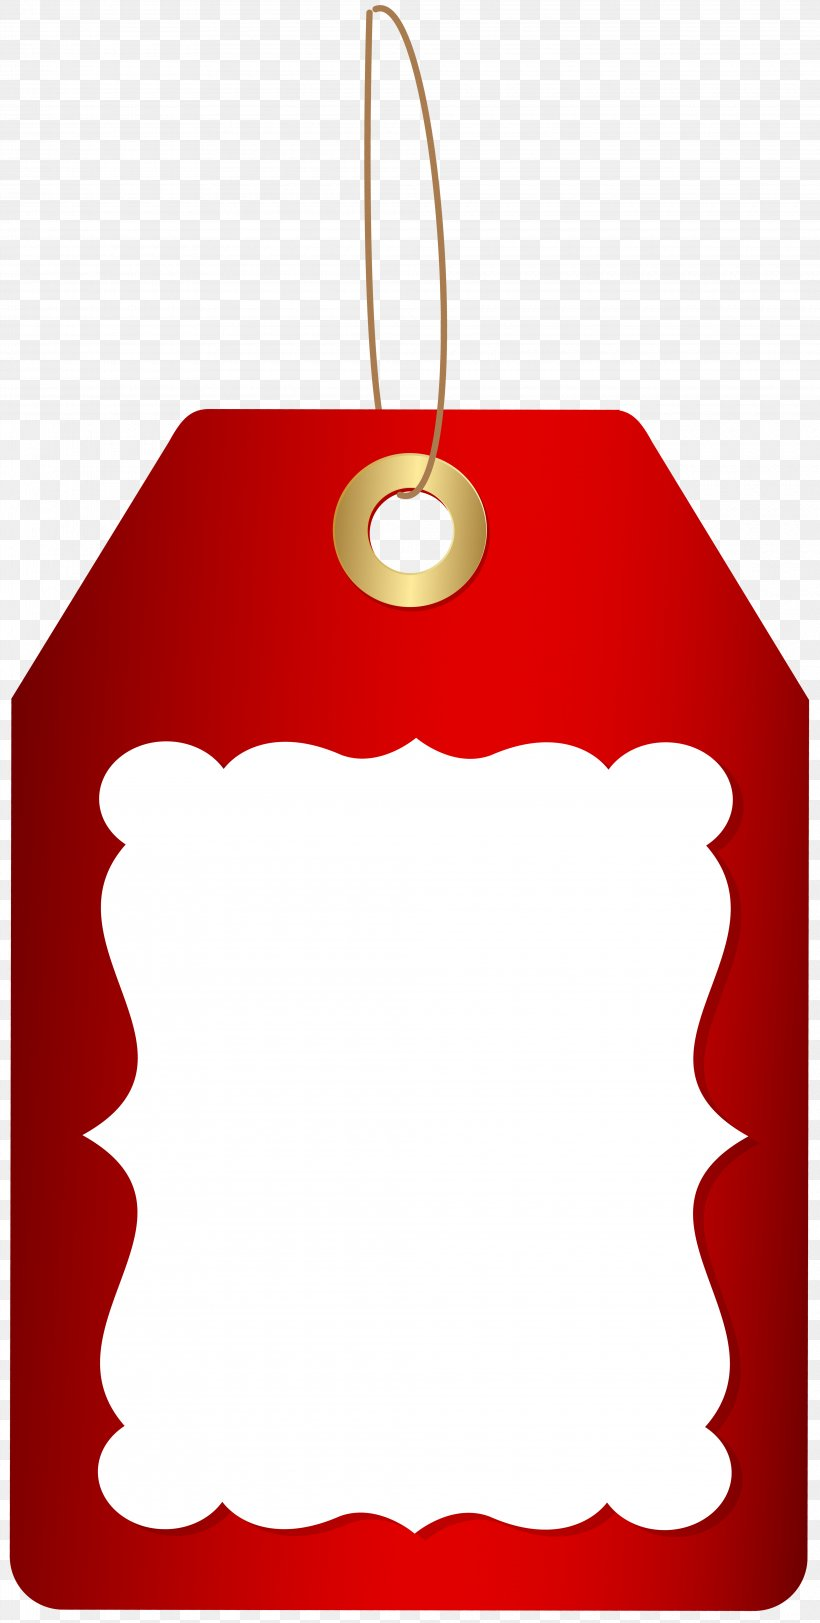 Tag Clip Art, PNG, 4040x8000px, Price Tag, Area, Christmas.